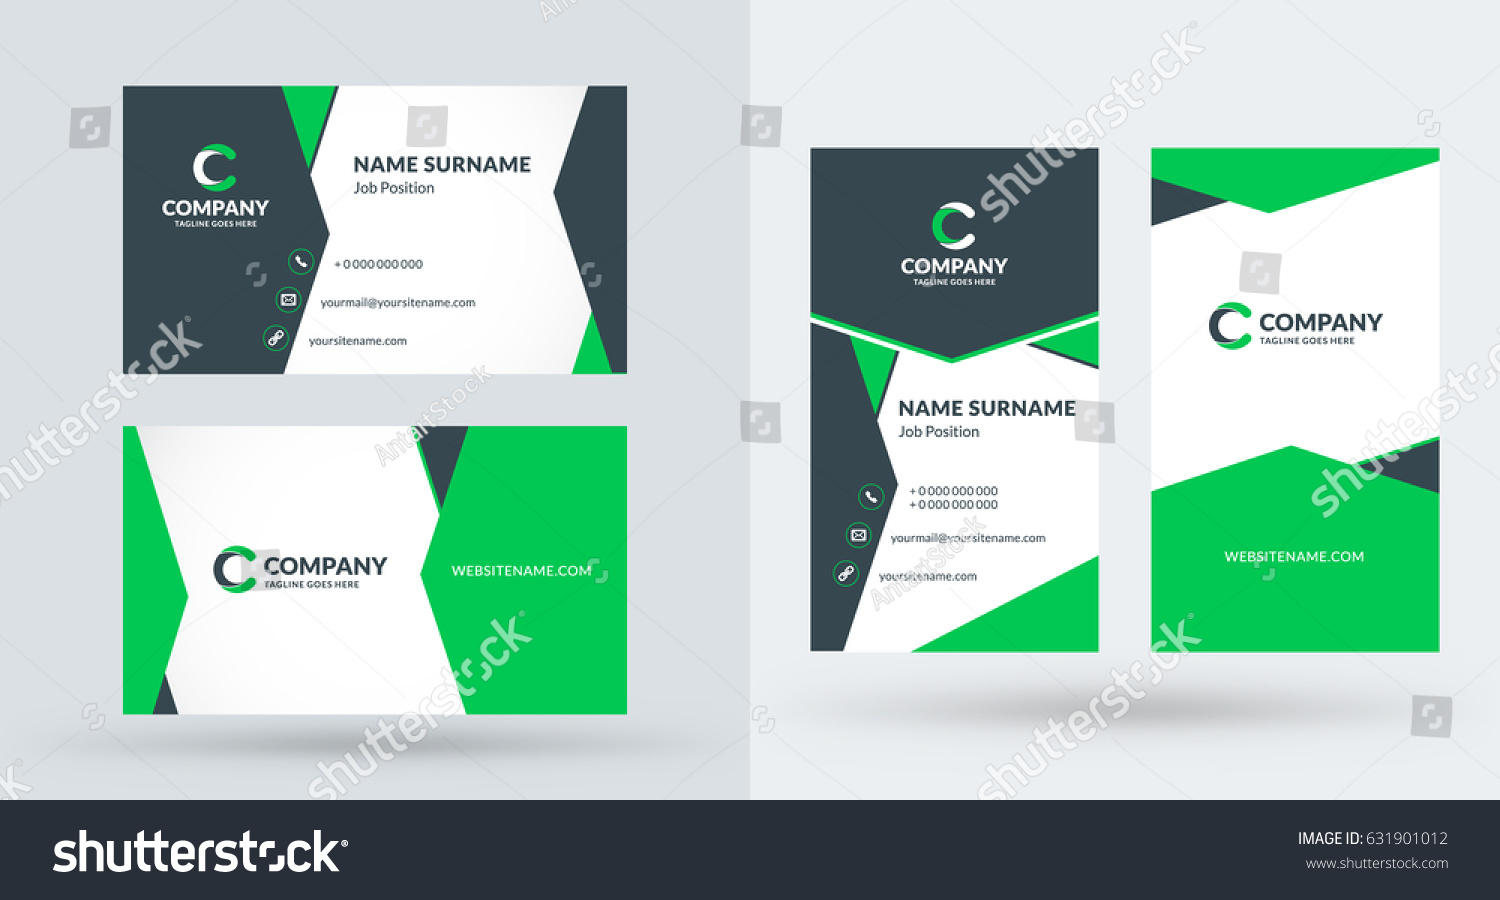 Doublesided creative business card template portrait stock vector double sided creative business card template portrait and landscape orientation horizontal and vertical flashek Image collections